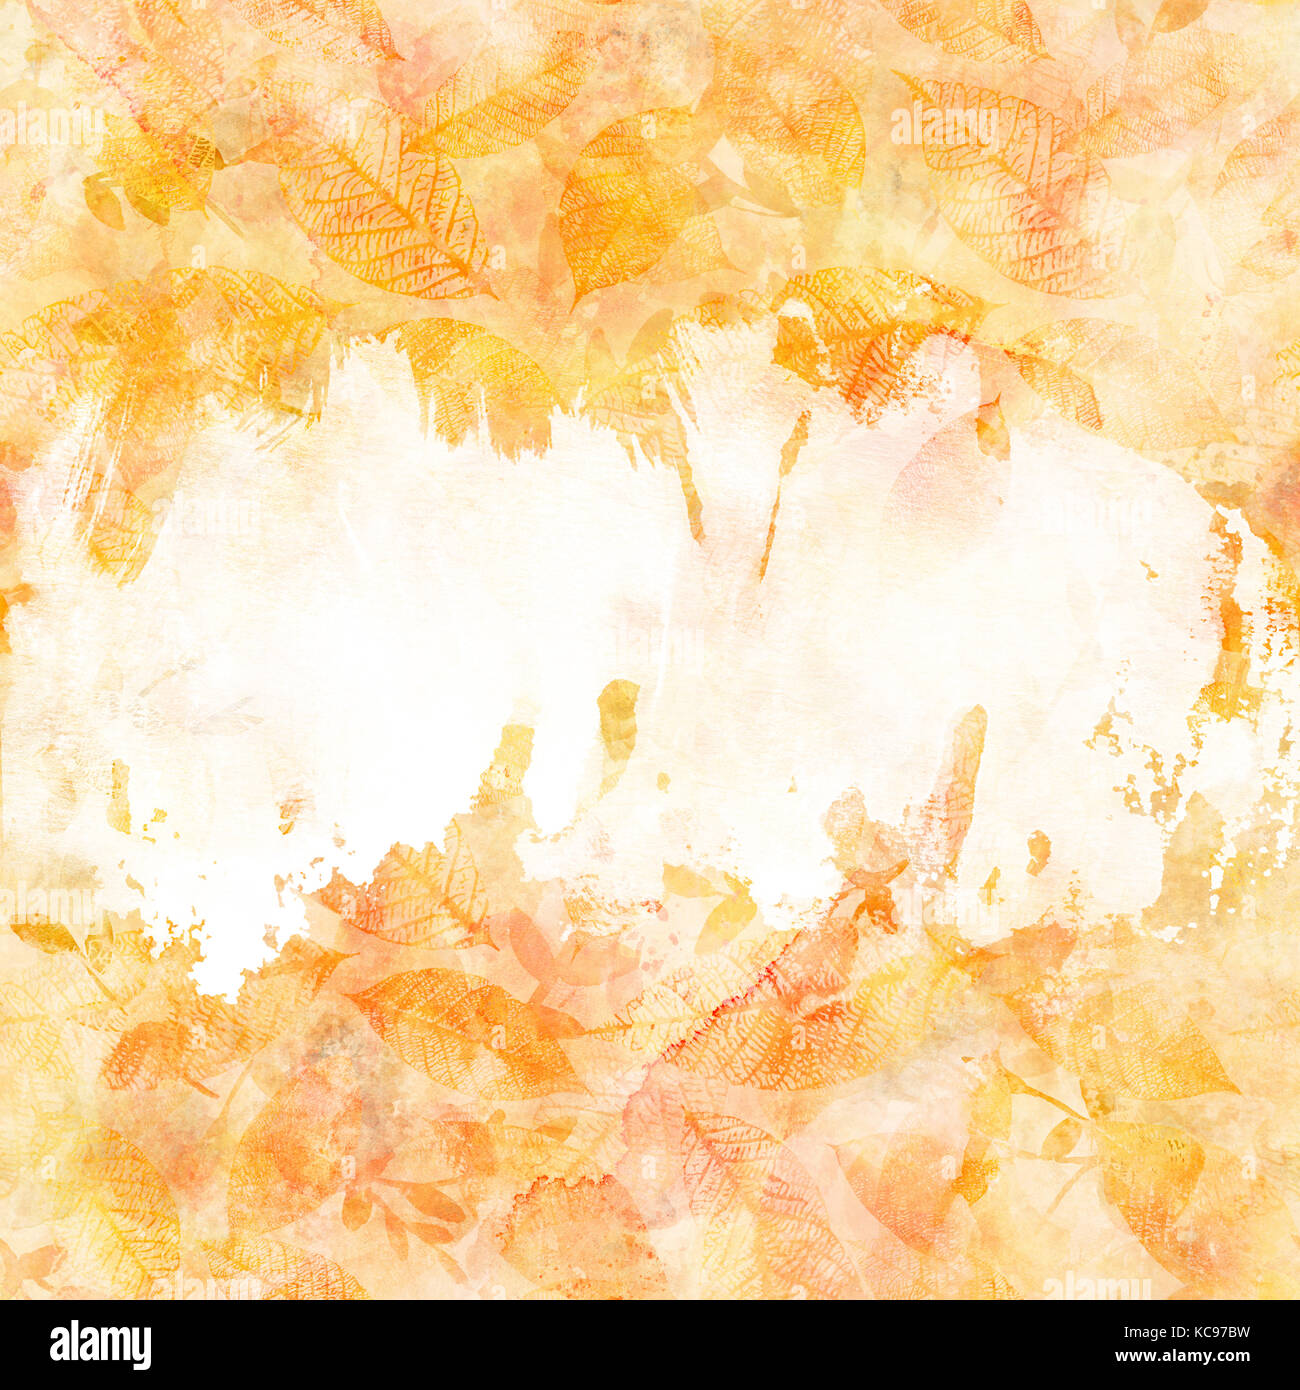 An autumn background texture with golden yellow and white painterly brush strokes and leaves silhouettes. An abstract - Stock Image